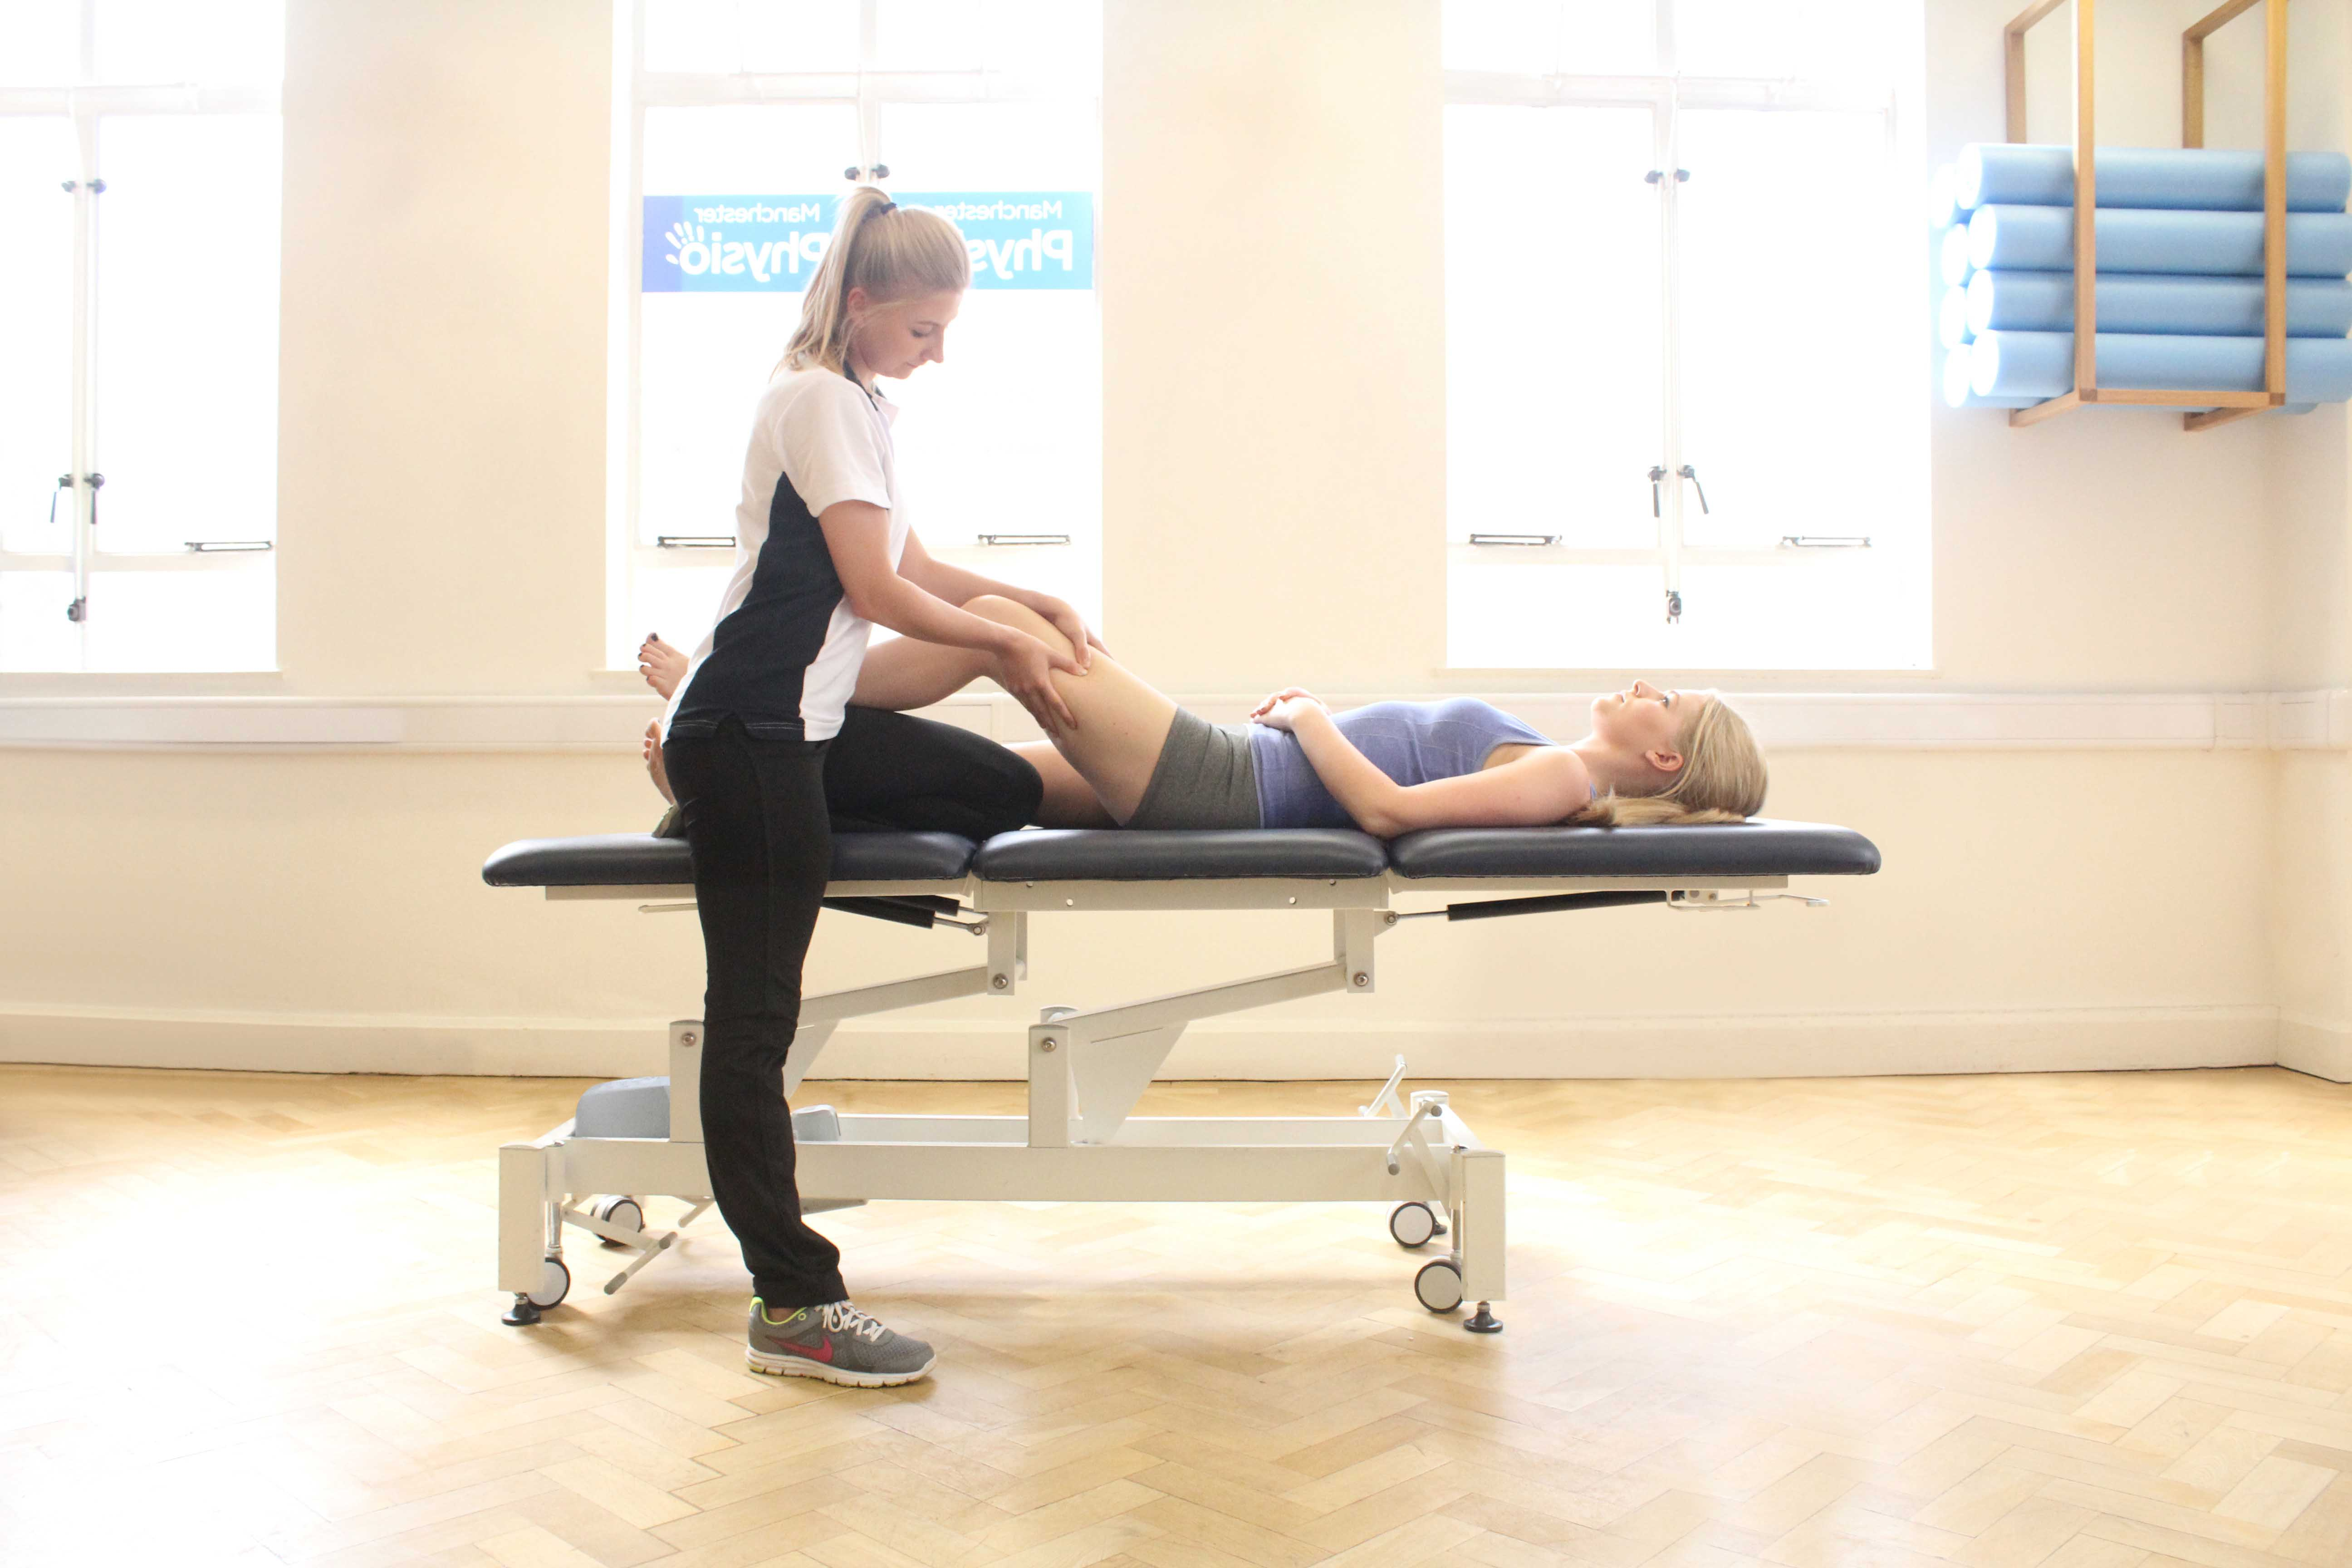 Trigger point massage of the quadriceps muscles by experienced MSK therapist